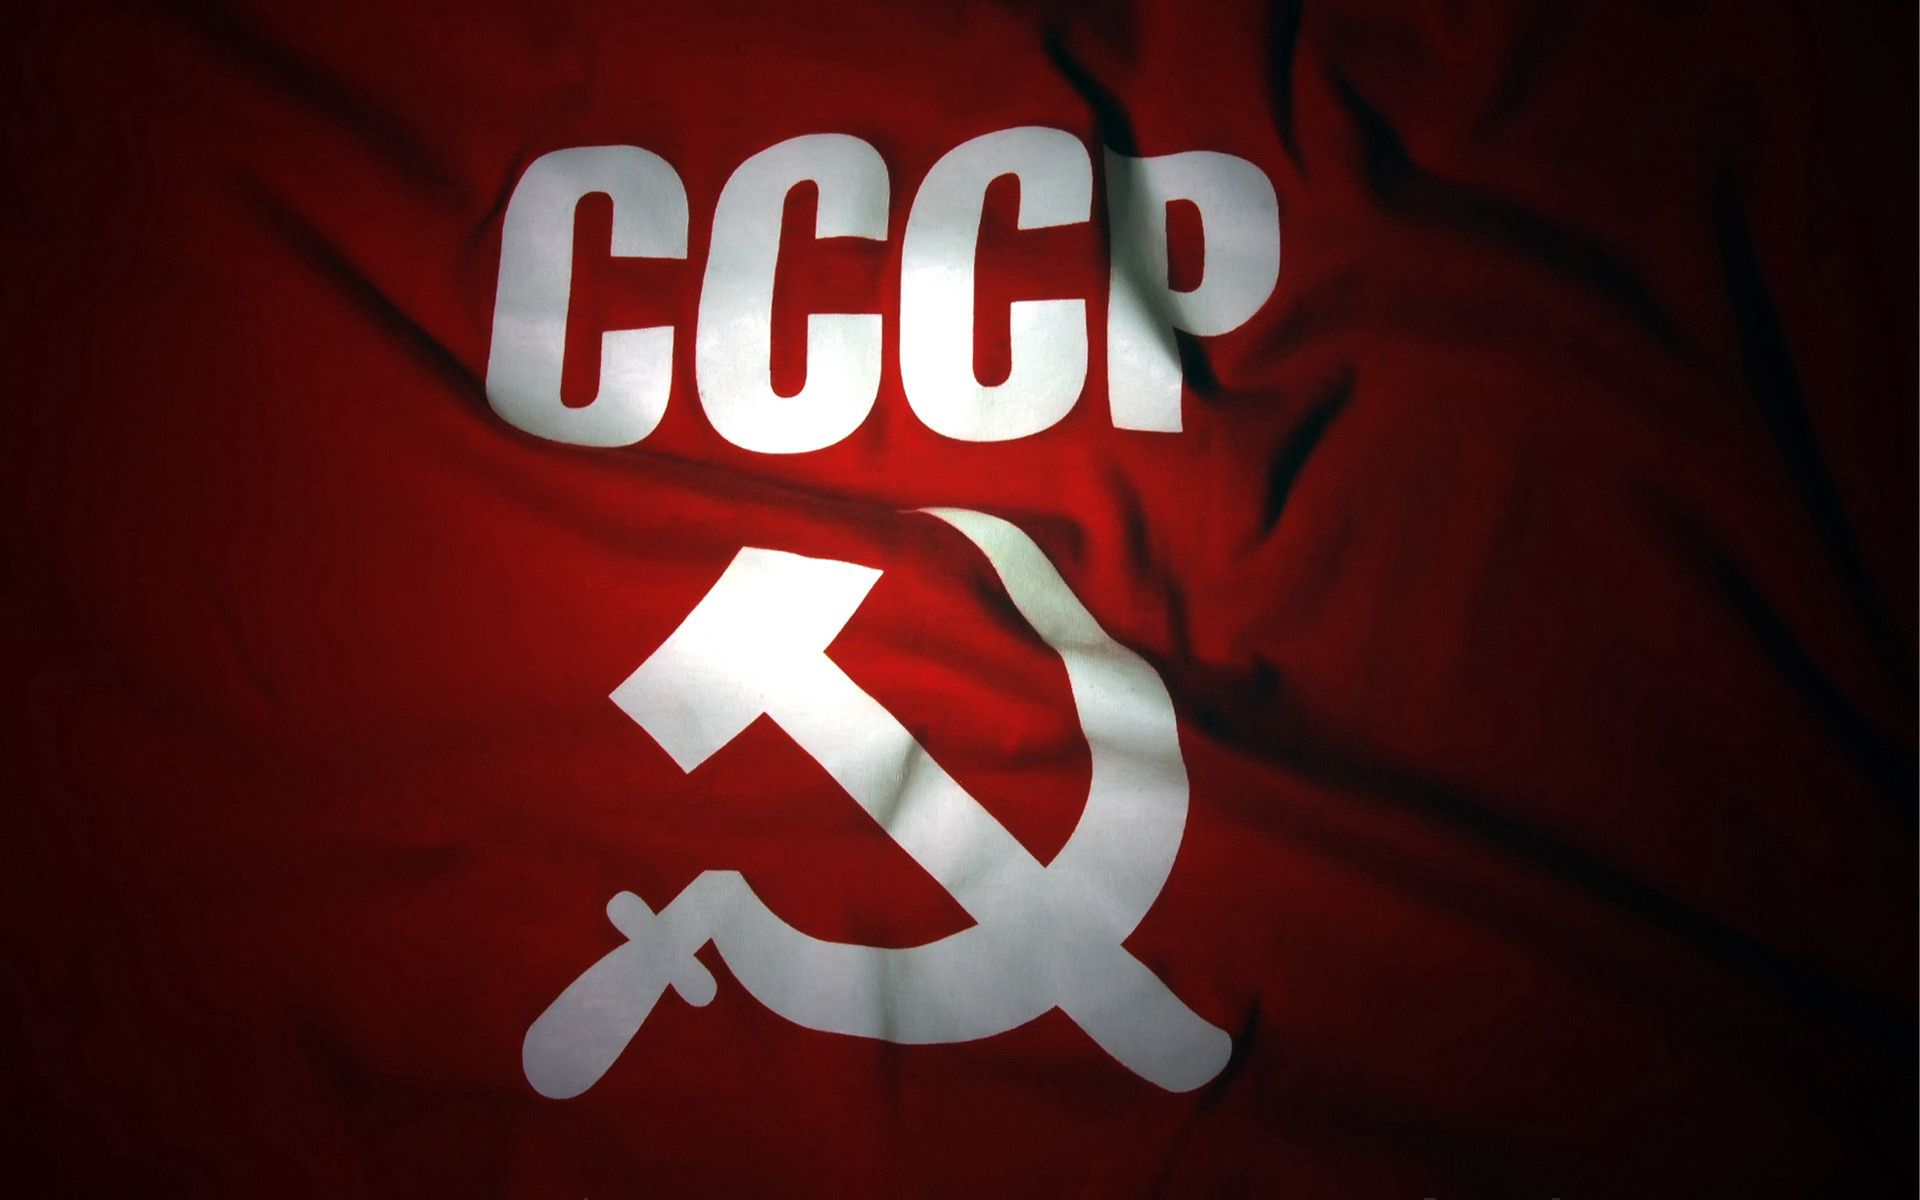 155726 Screensavers and Wallpapers Sssr for phone. Download Sssr, Miscellanea, Miscellaneous, Russia, Flag, Hammer, Sickle pictures for free